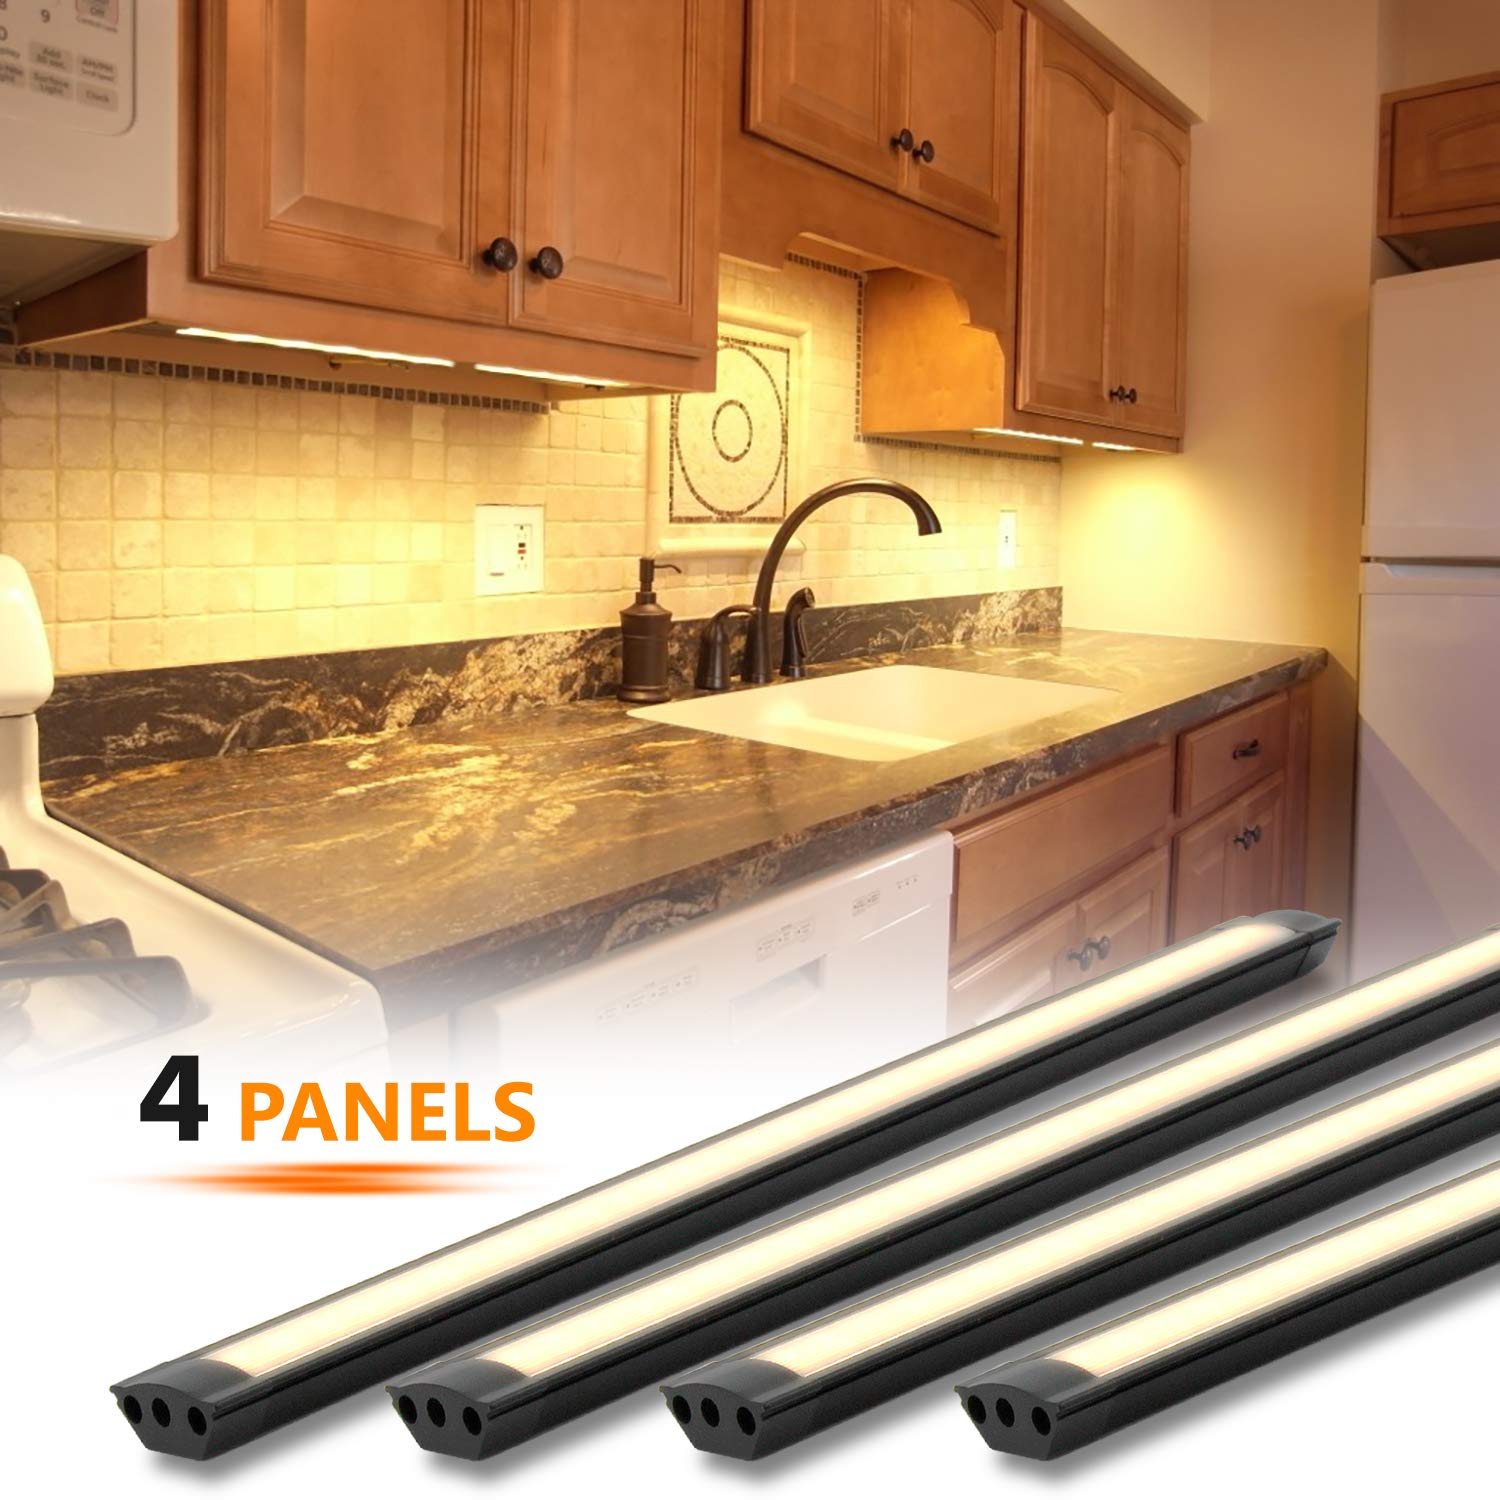 MYPLUS LED Under Cabinet Lighting, 4 pcs 12 inches Extremely Soft Kitchen Lights 12W, 840lm With 10 Levels Dimmable LED Under Counter Lights, for Kitchen Cabinet,Counter,Workbench etc - 3000K by MYPLUS (Image #1)